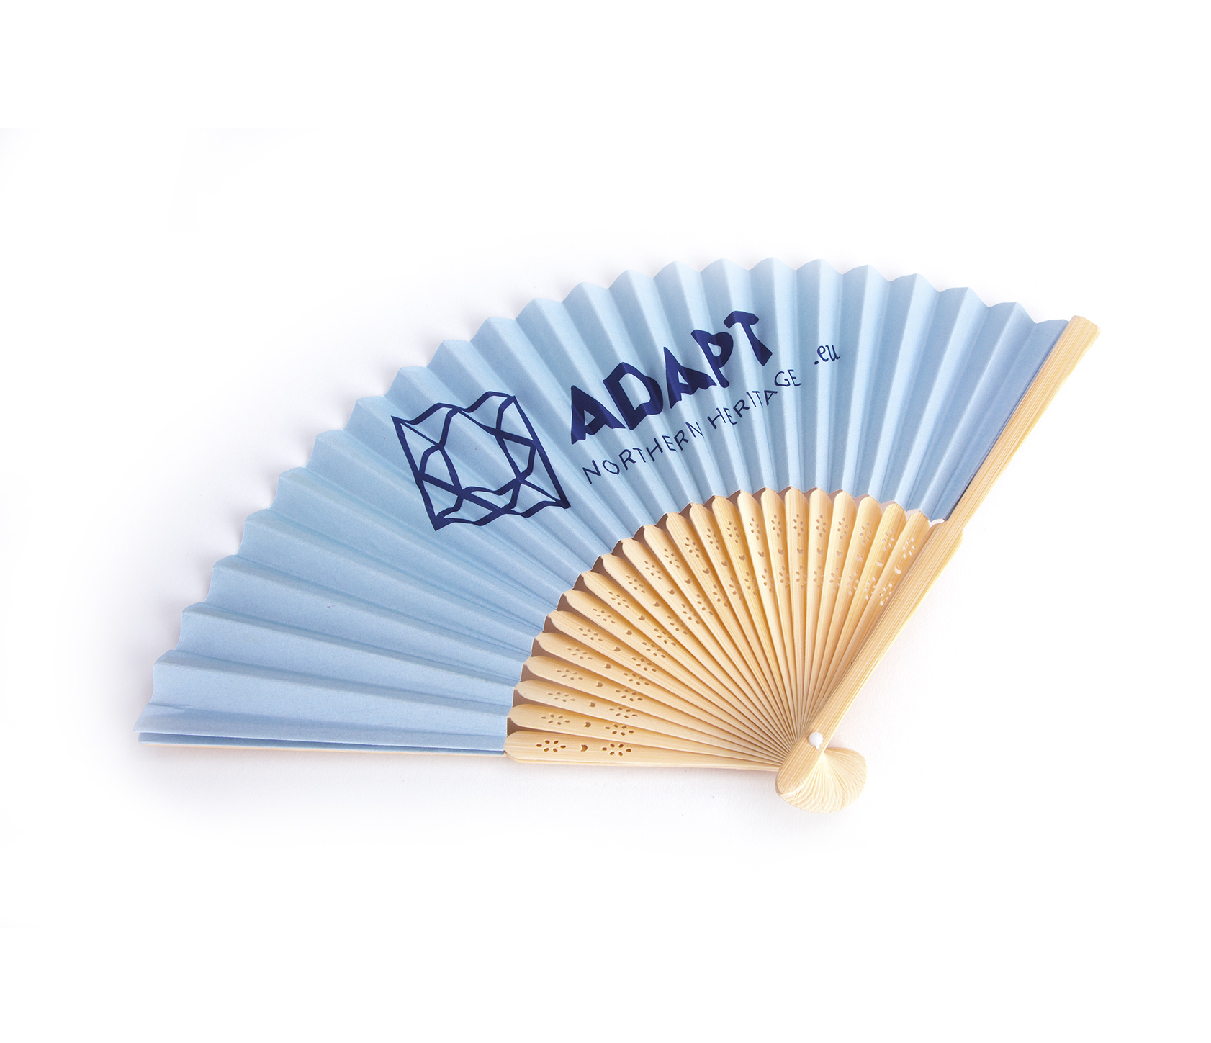 Bamboo and paper hand fans